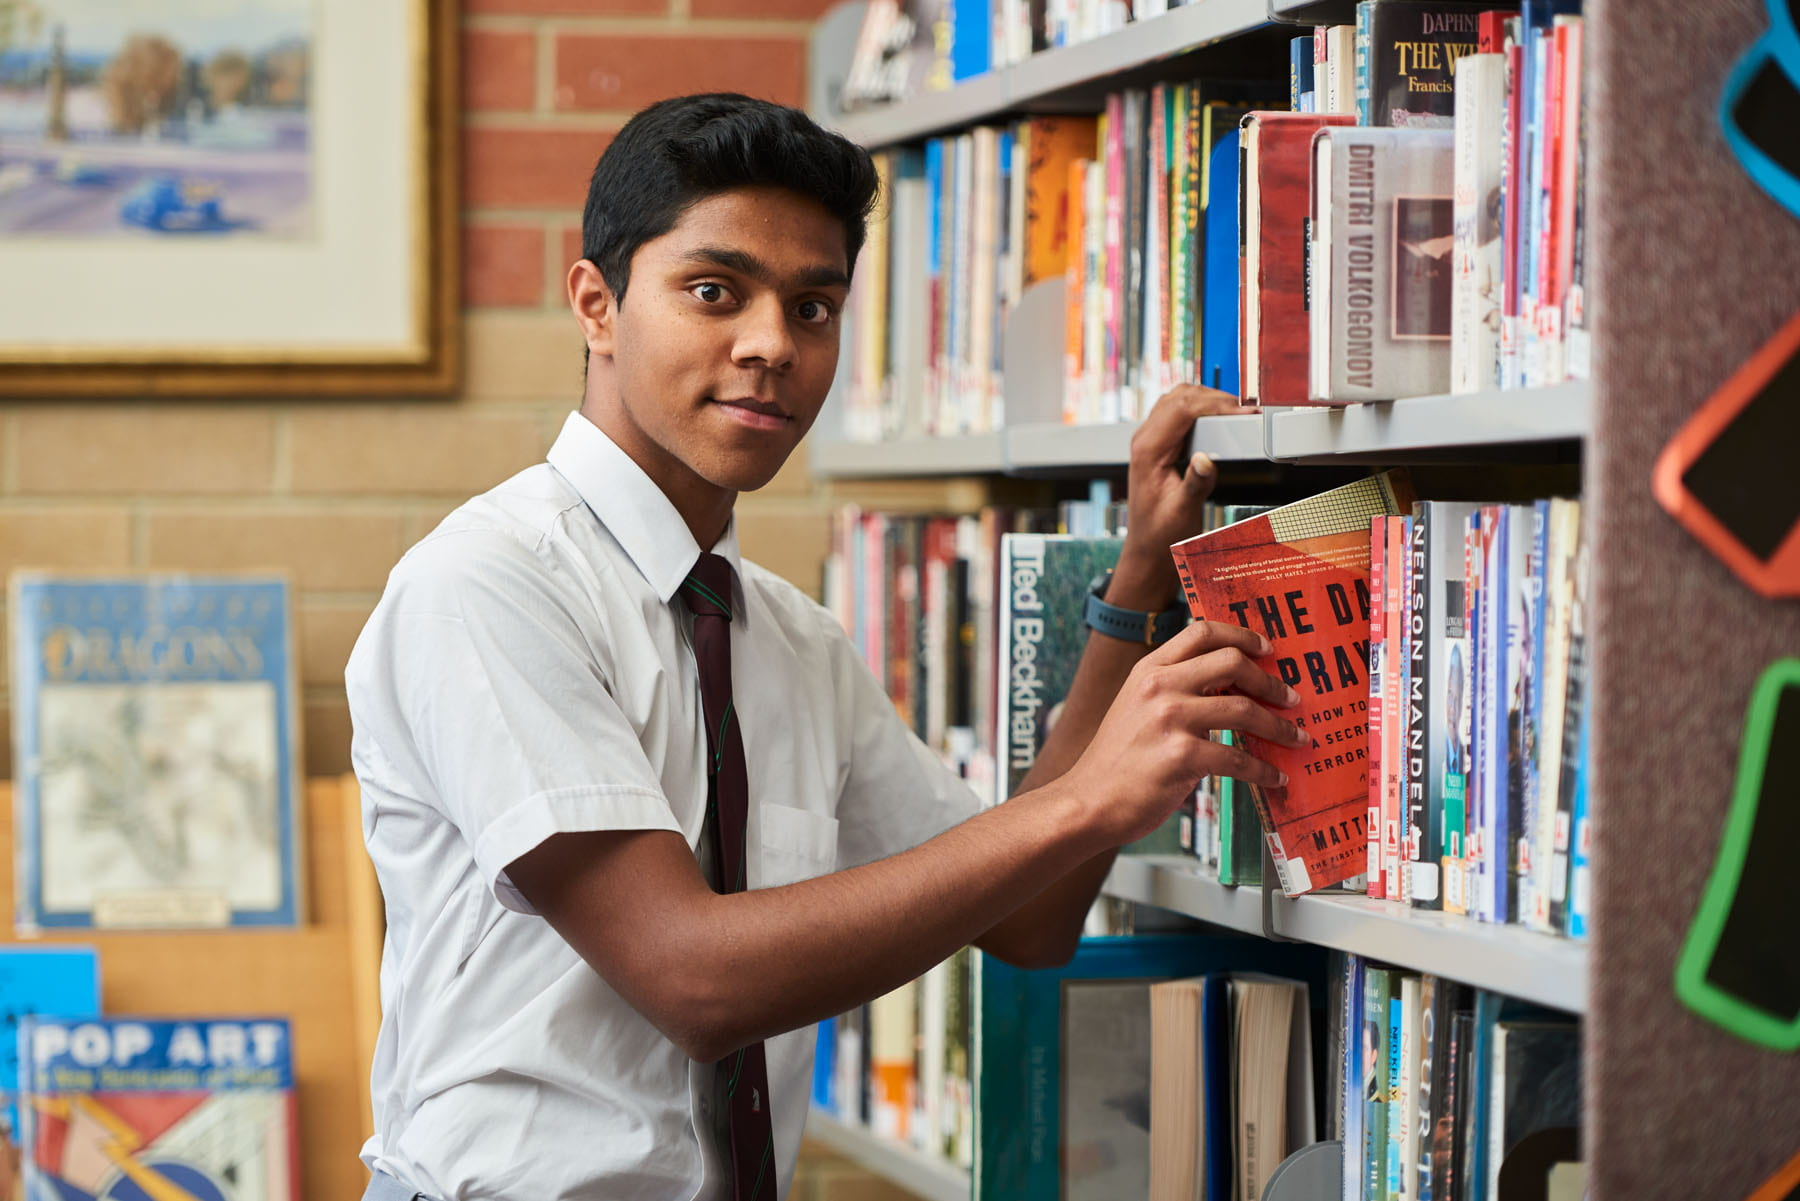 Teenager taking book off library shelf